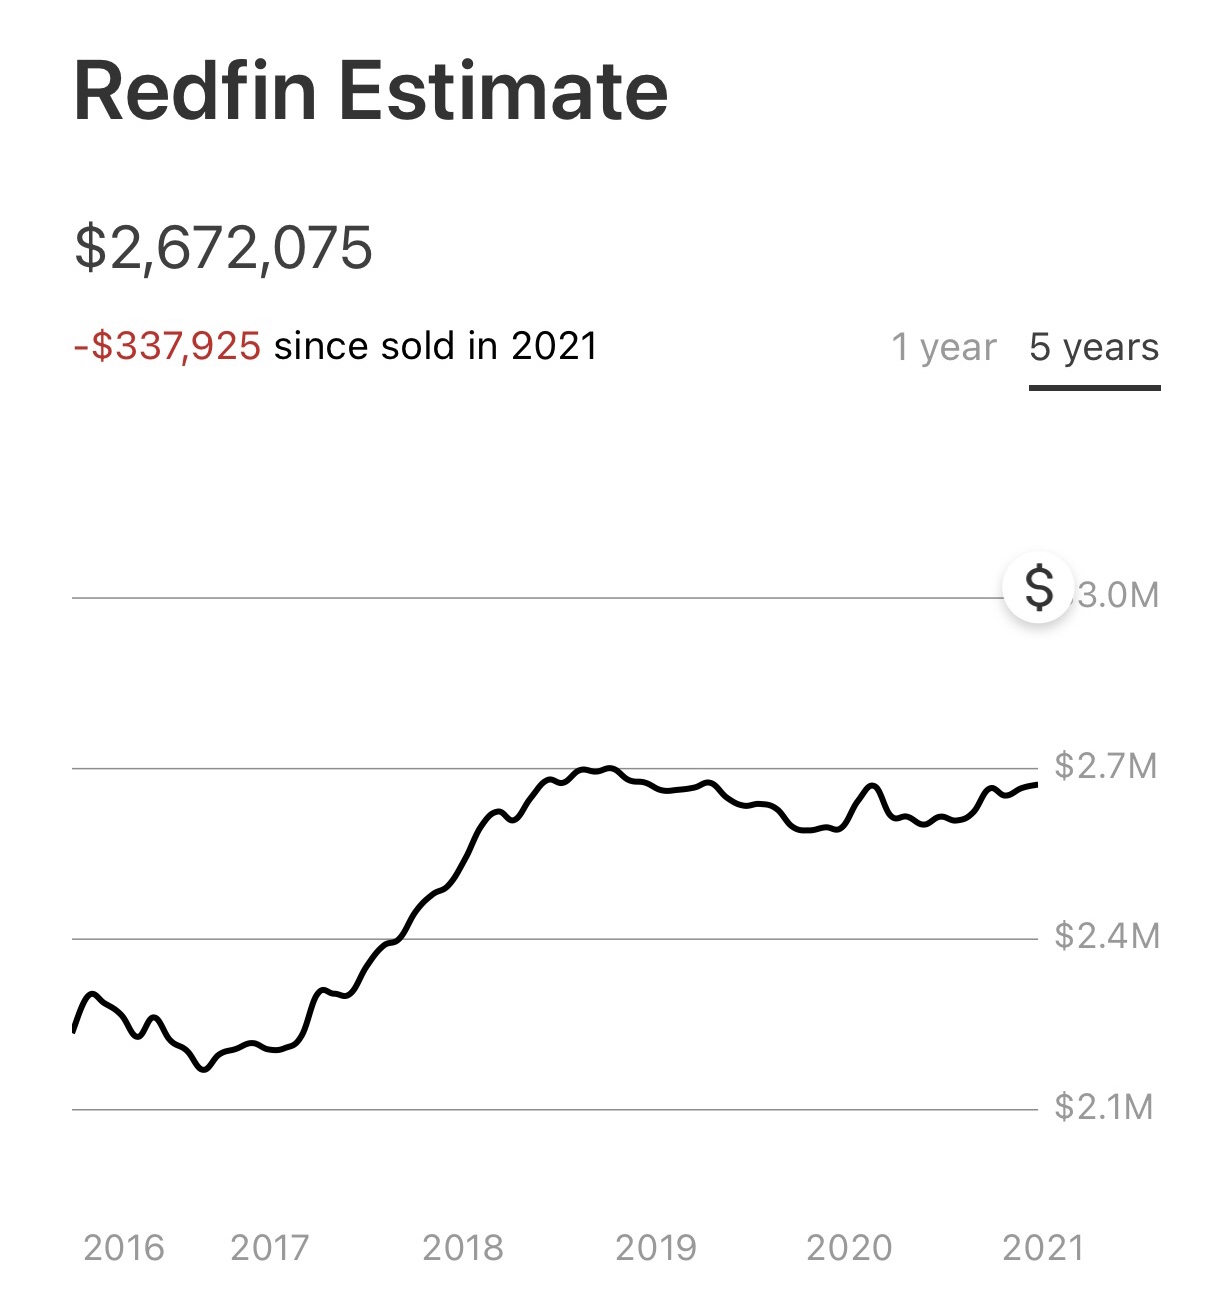 Why Real Estate Is Less Risky Than Stocks And The Irony That Follows - redfin valuation algorithm needs updating